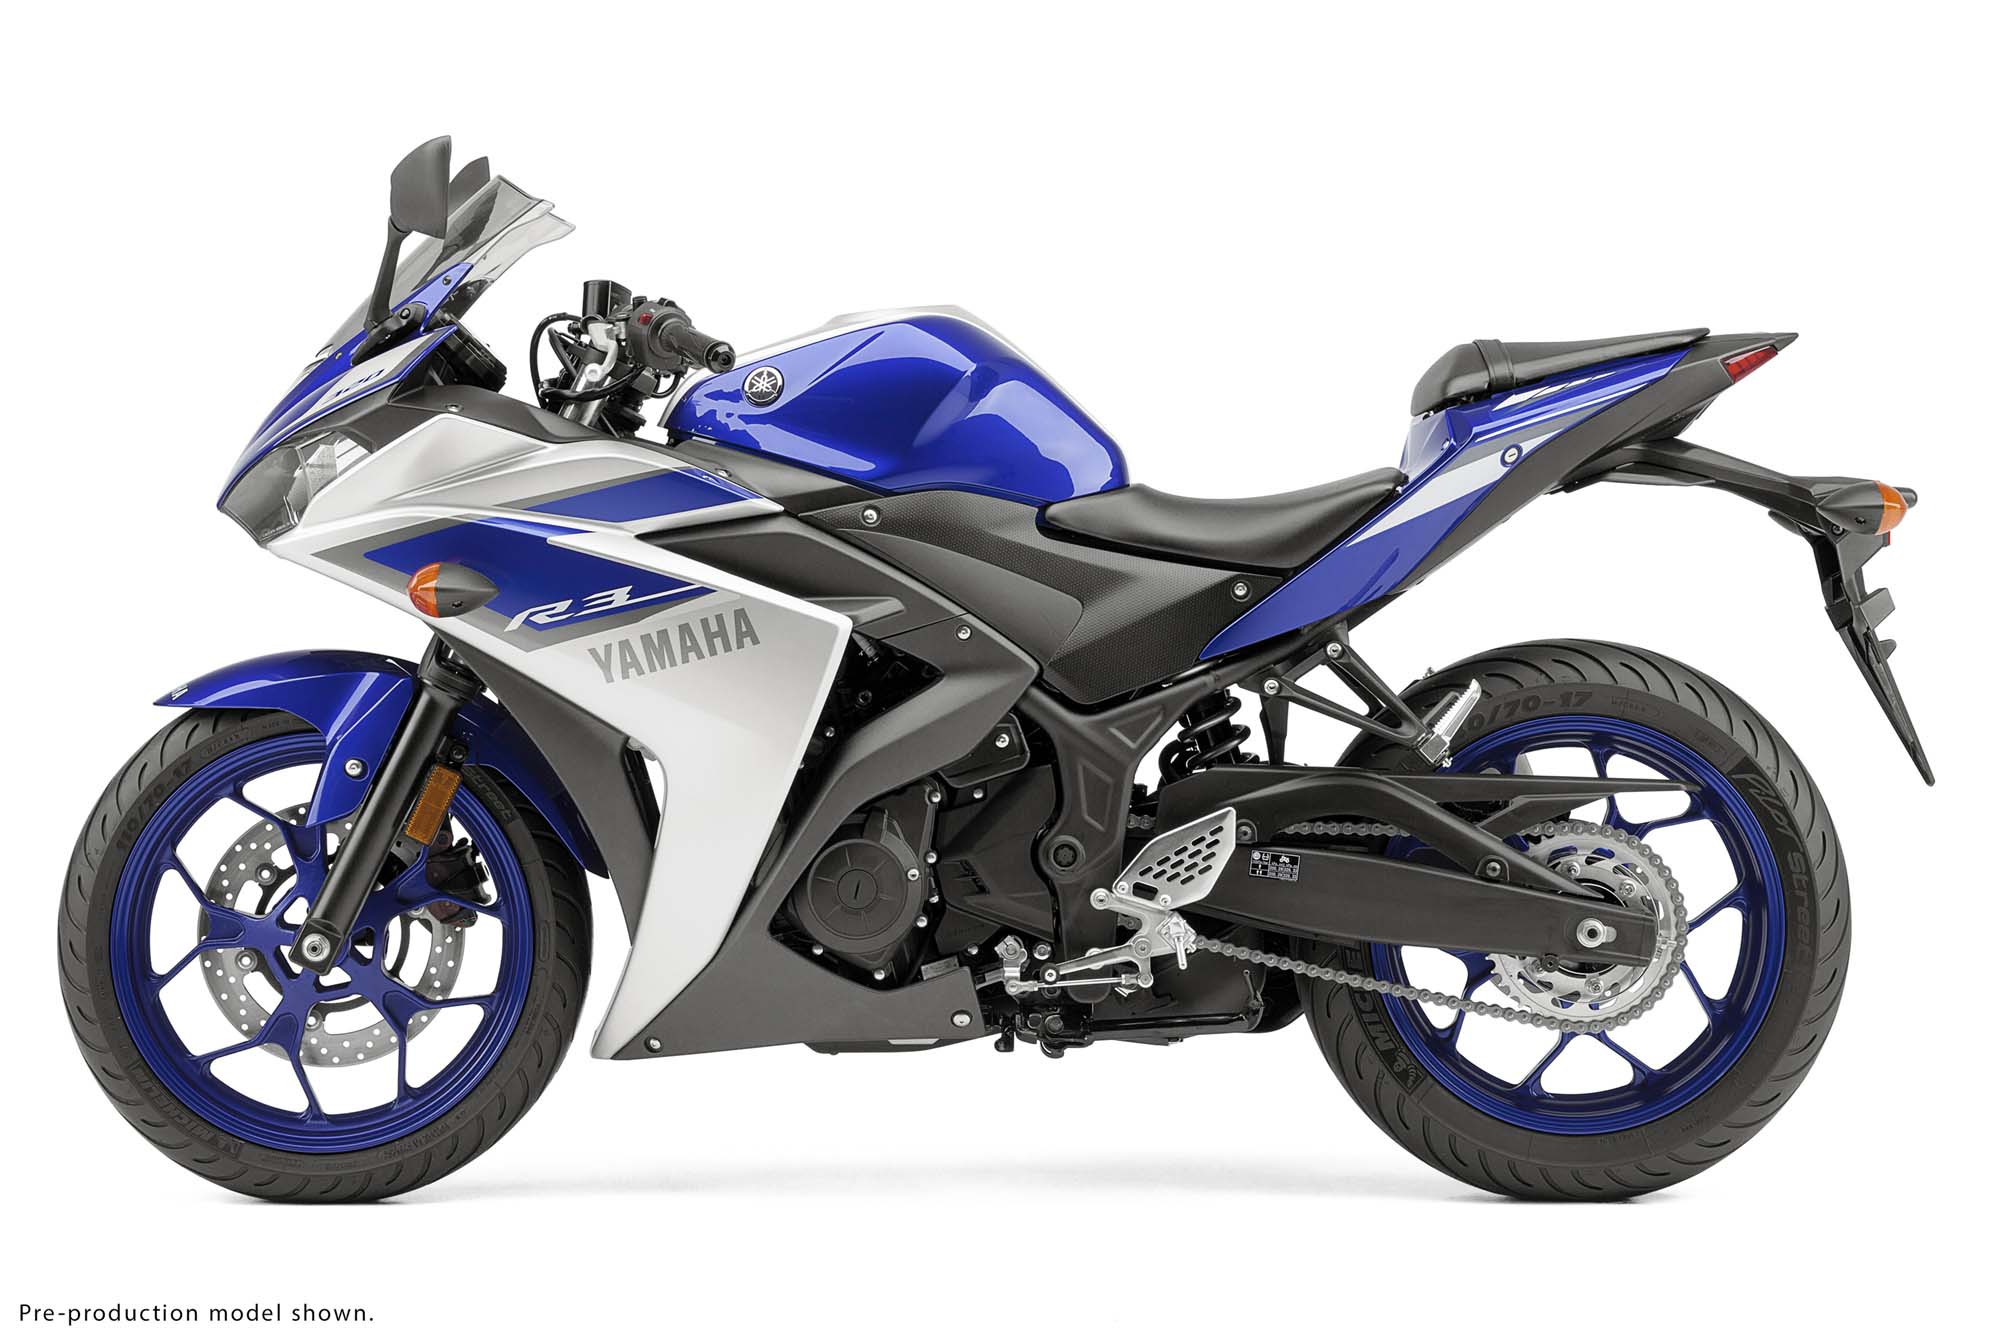 2016 Yamaha r3 photo - 2